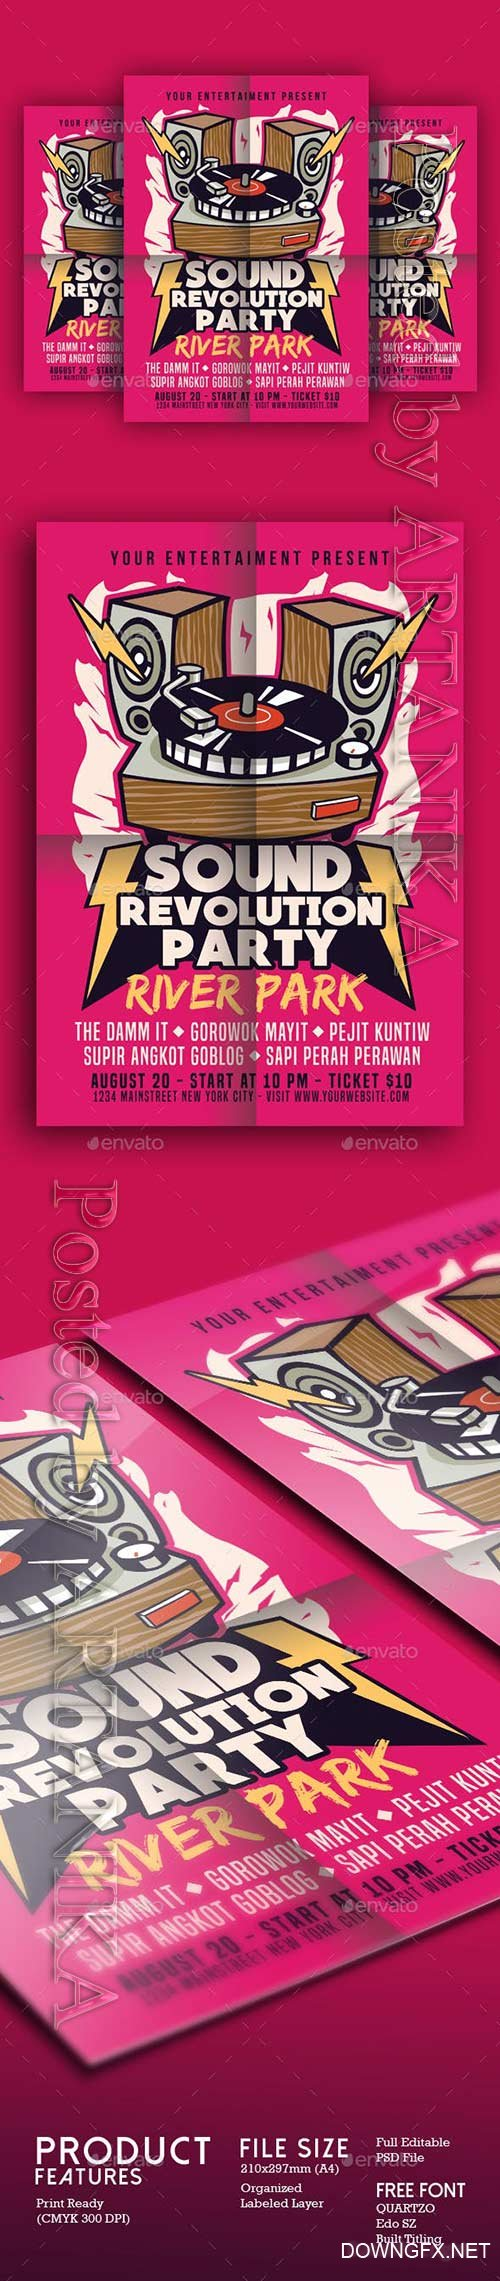 Graphicriver - Sound Revolution Party 17997729